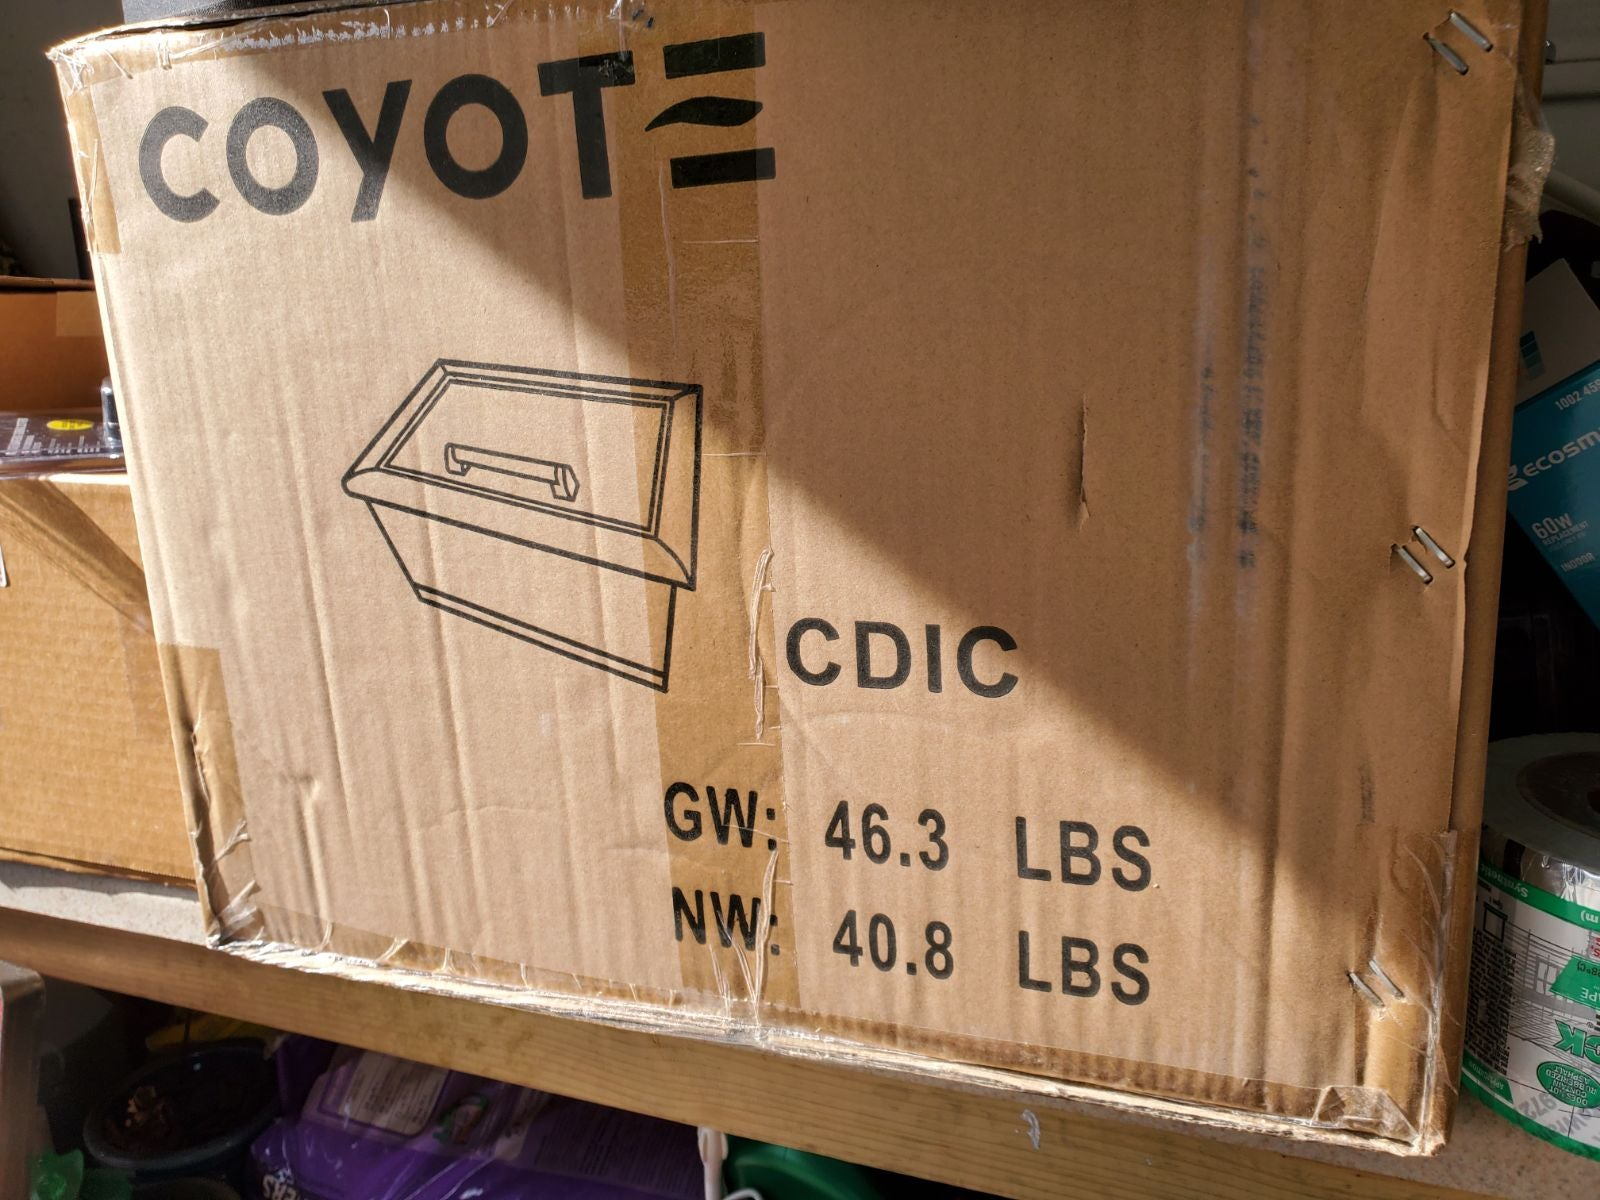 NIB Coyote drop in cooler. CDIC Stainles